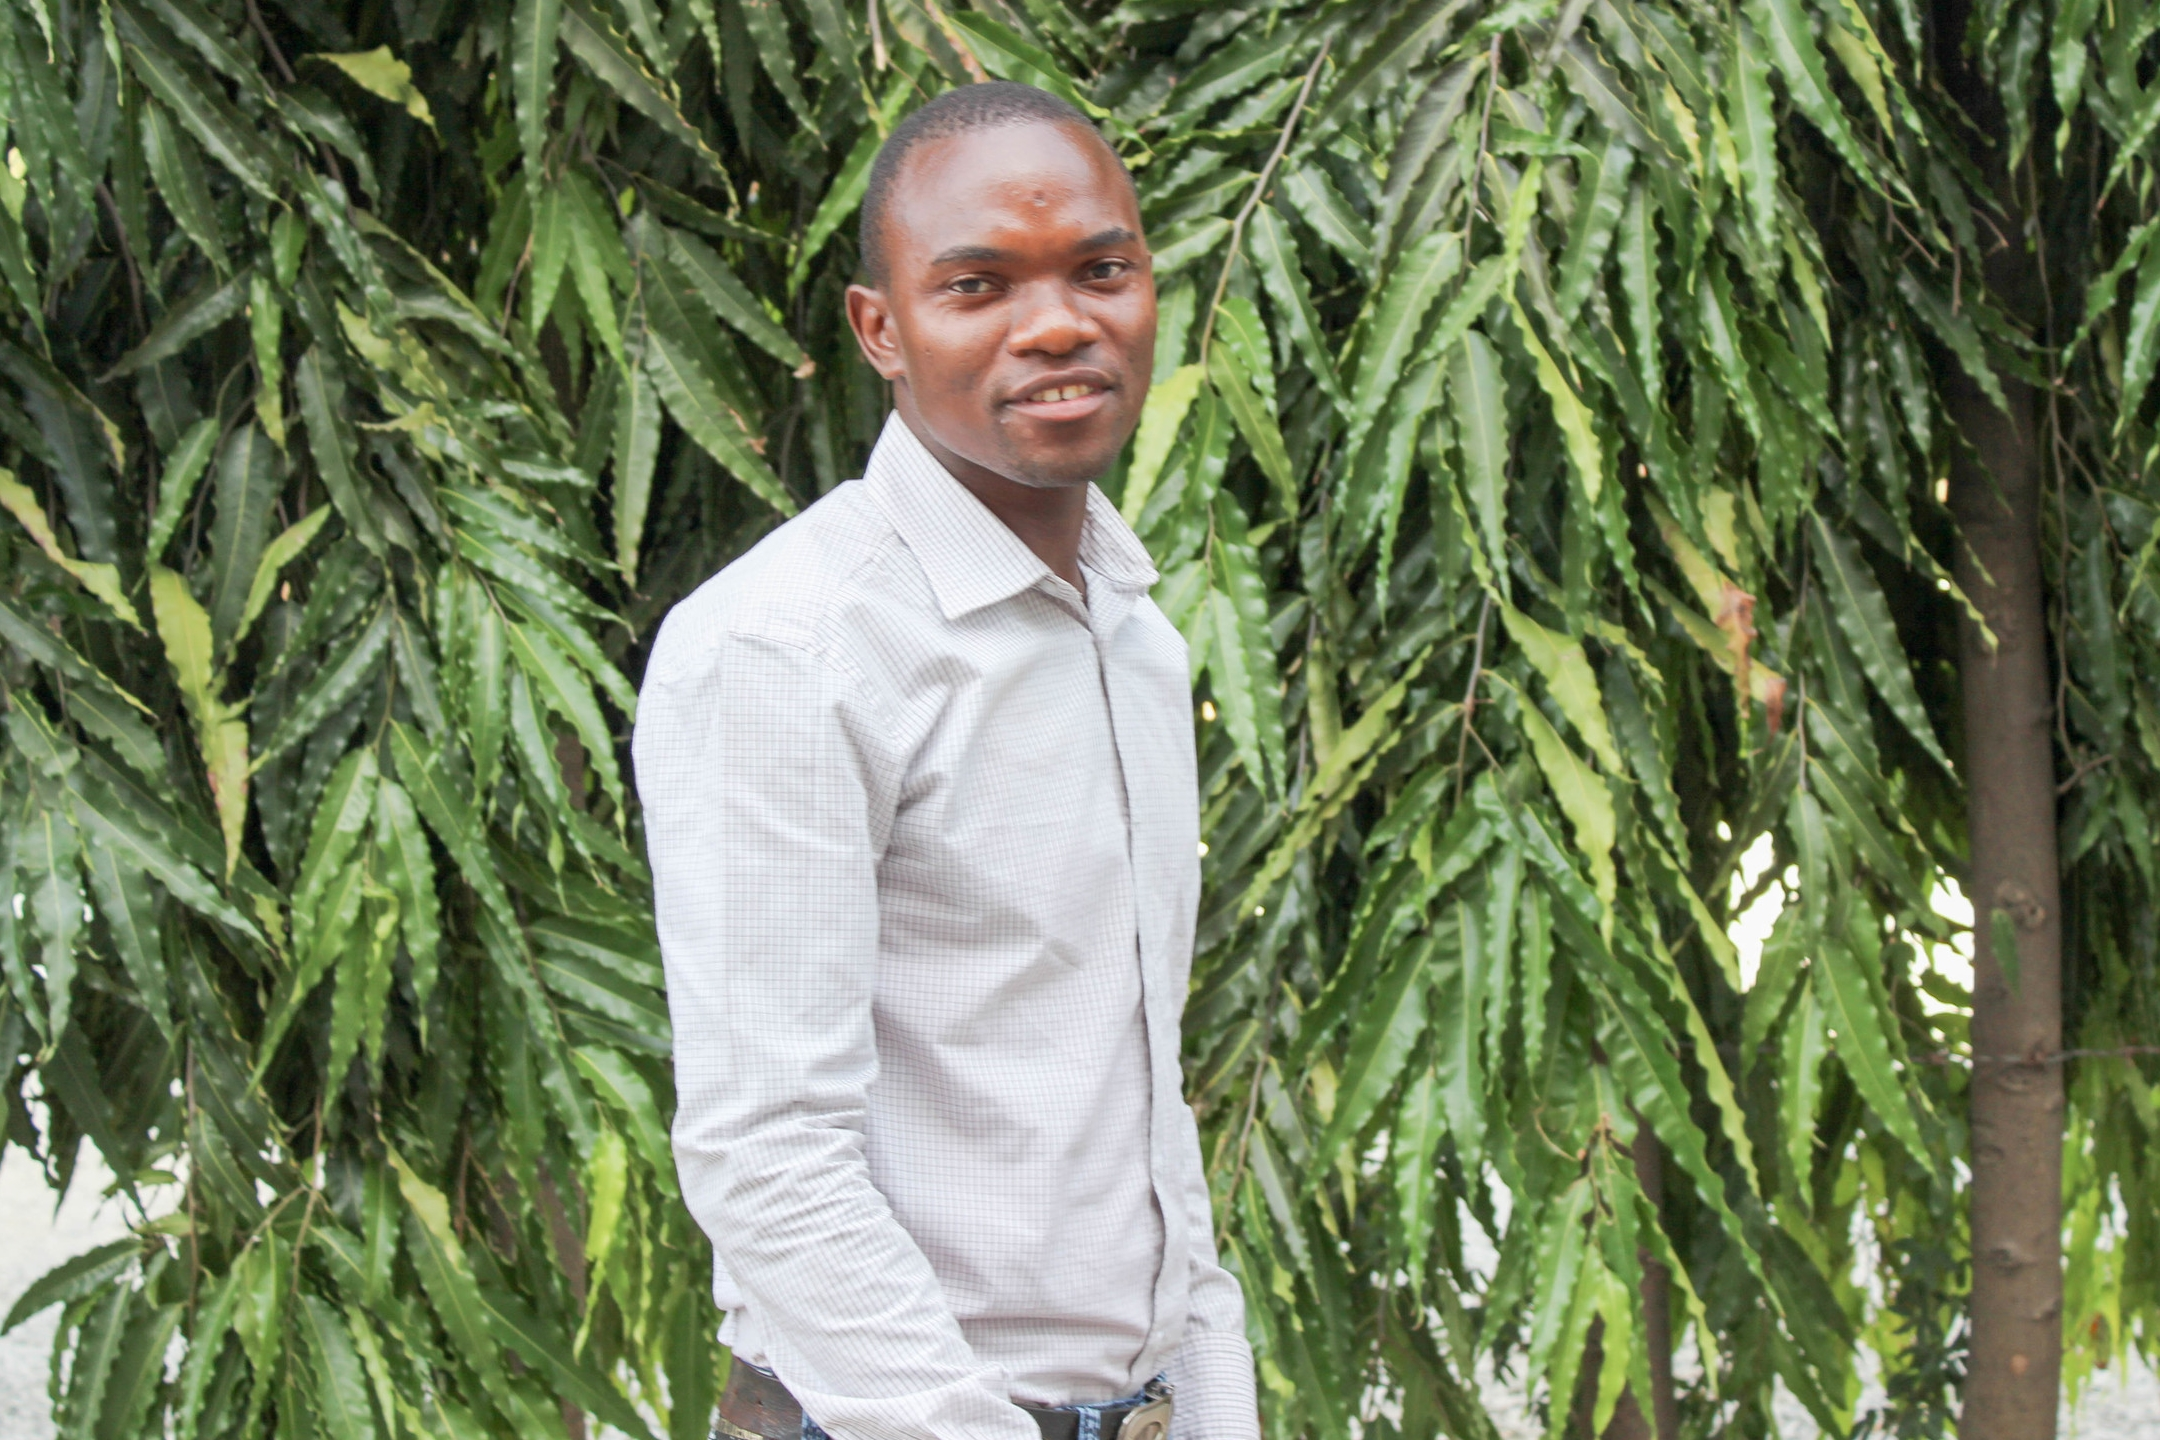 James Mshenga, Health Counselor